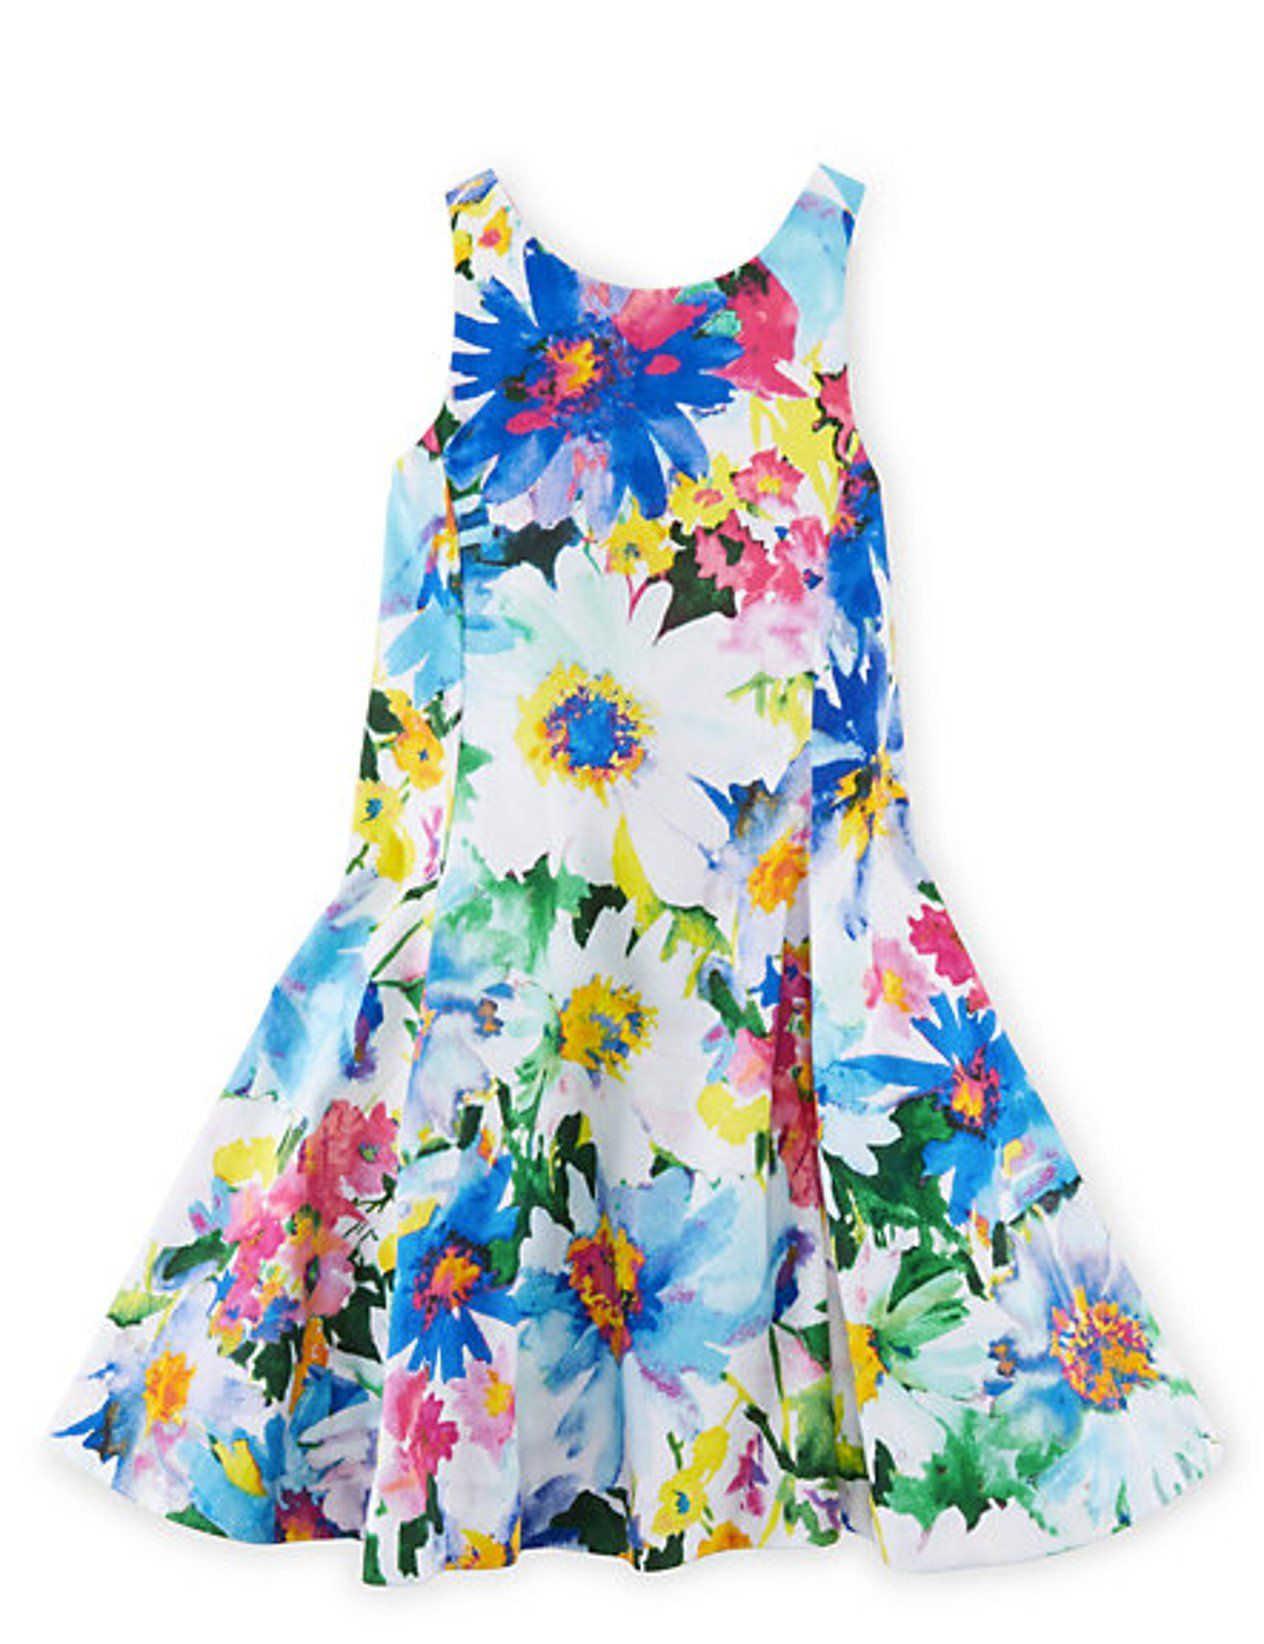 Ralph Lauren Girls Floral Cotton Sateen Dress 4t Turquoise Pink Multi Shell And Lining 100 Floral Print Sundress Toddler Girl Dresses Floral Cotton Dress [ 1644 x 1264 Pixel ]